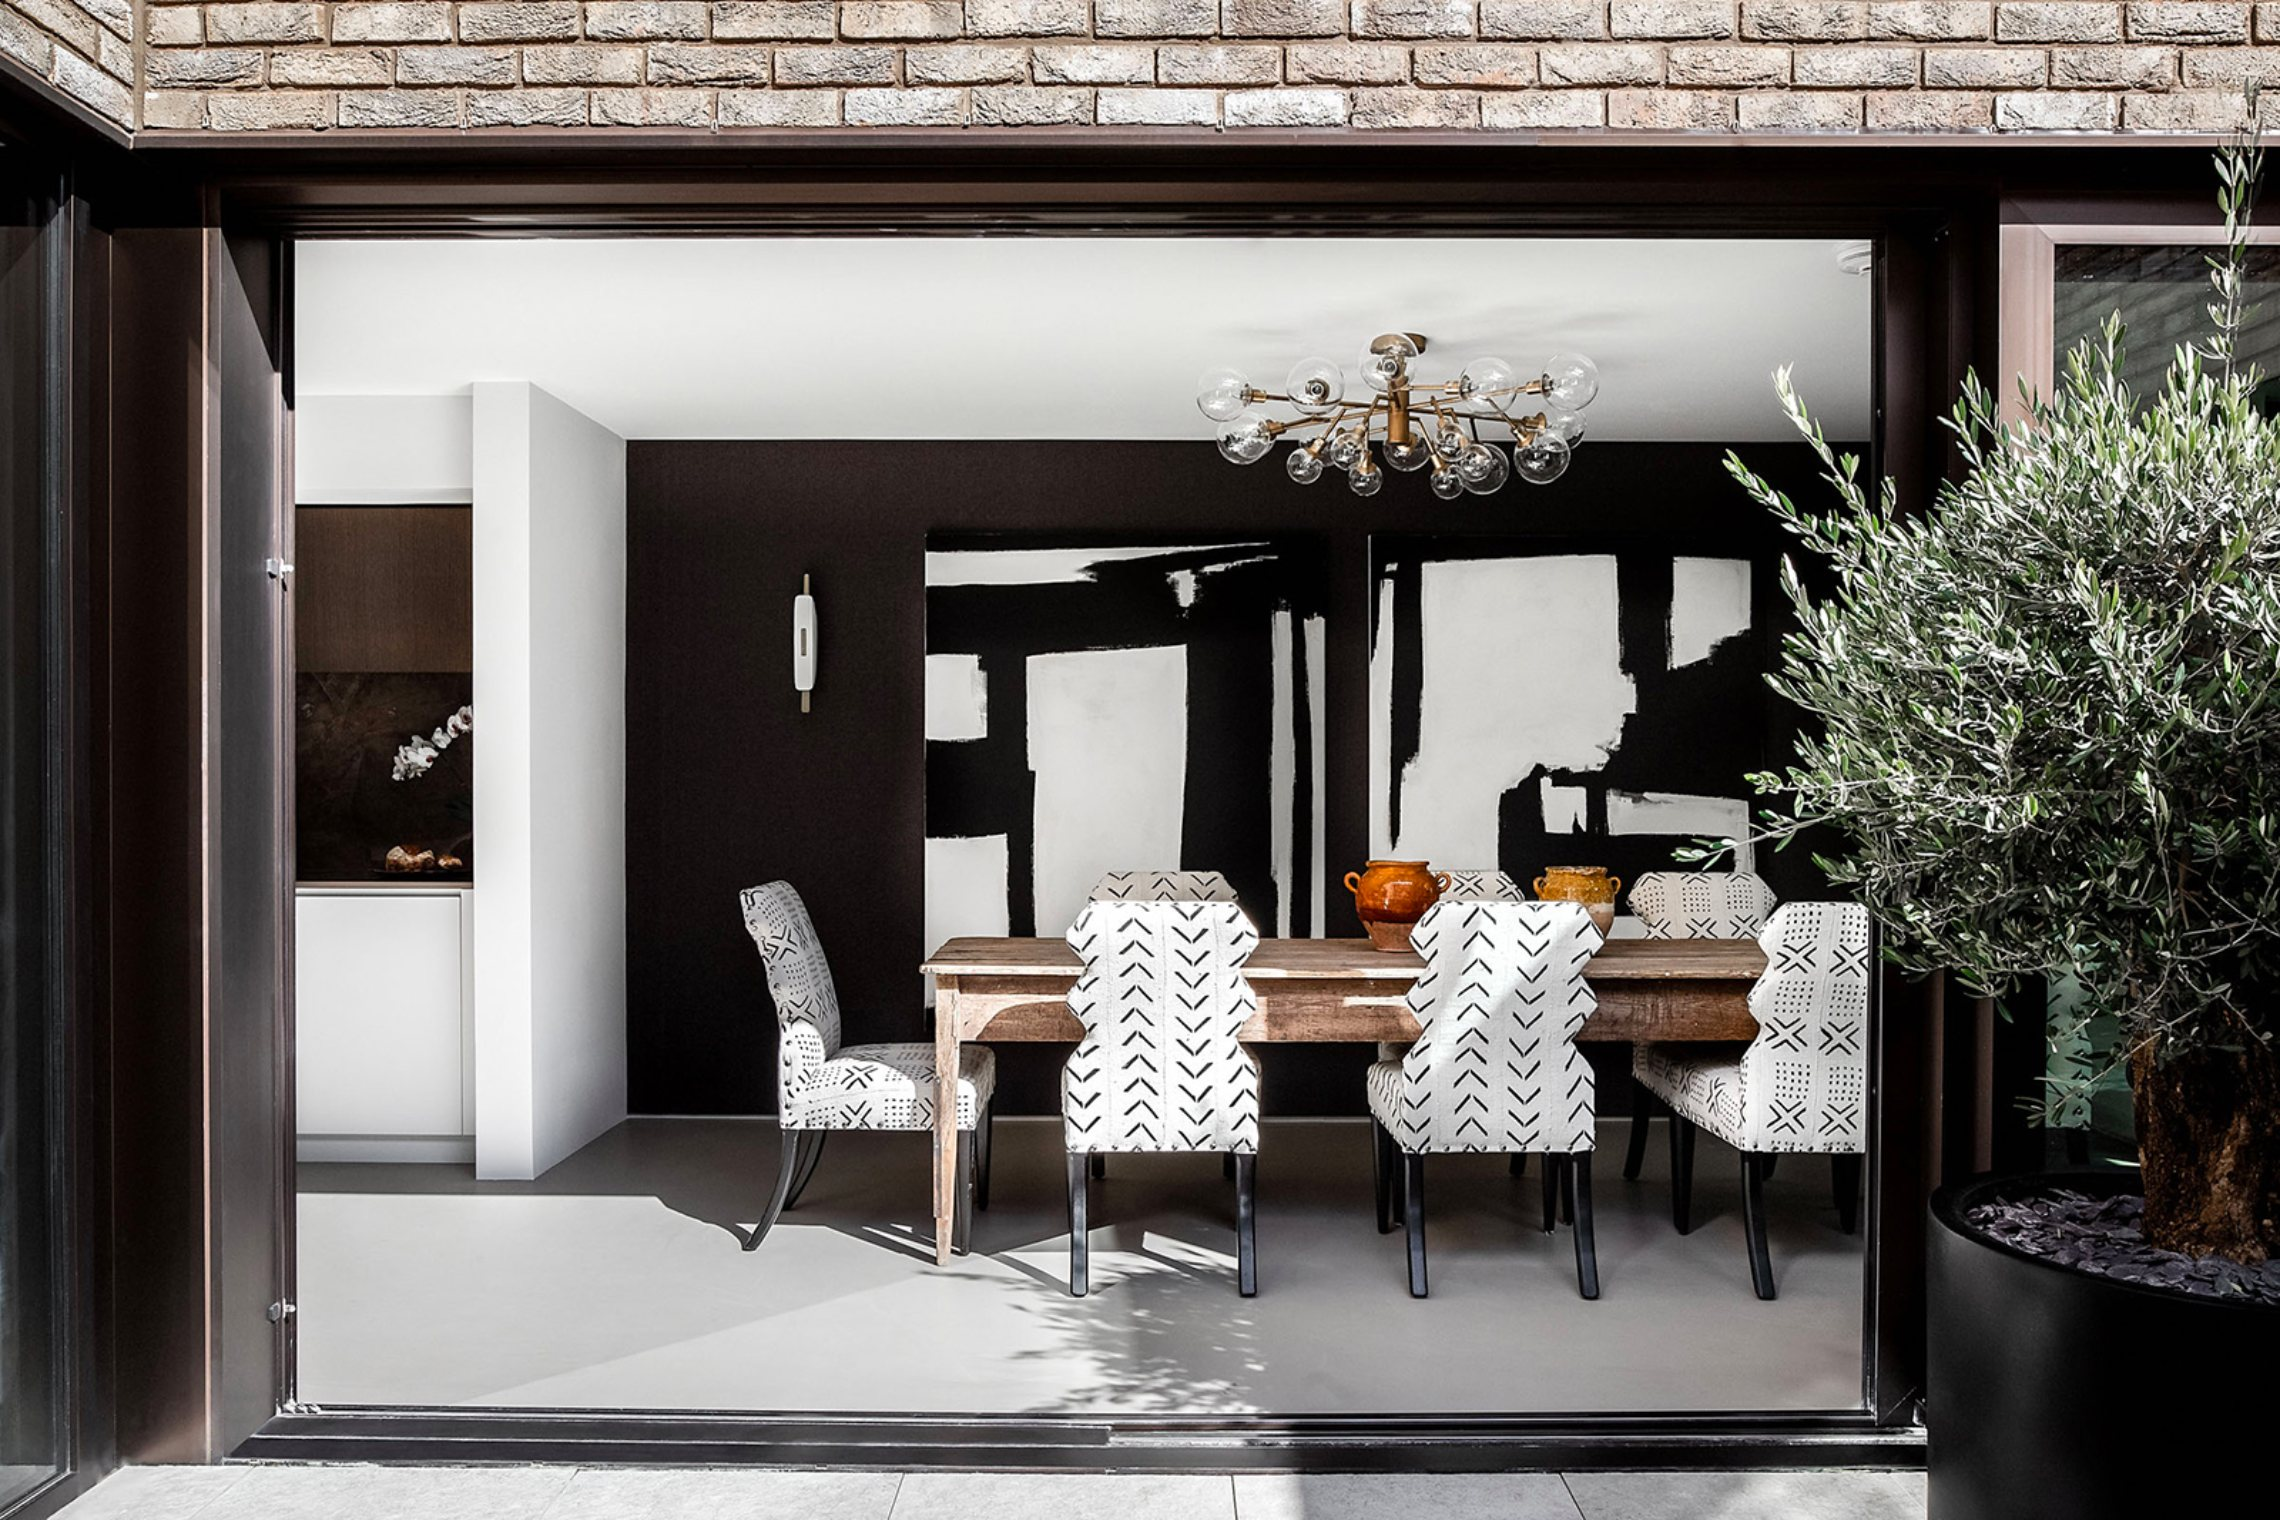 Looking through from the courtyard to the dining room, where a wooden dining table is surrounded by monochrome printed chairs